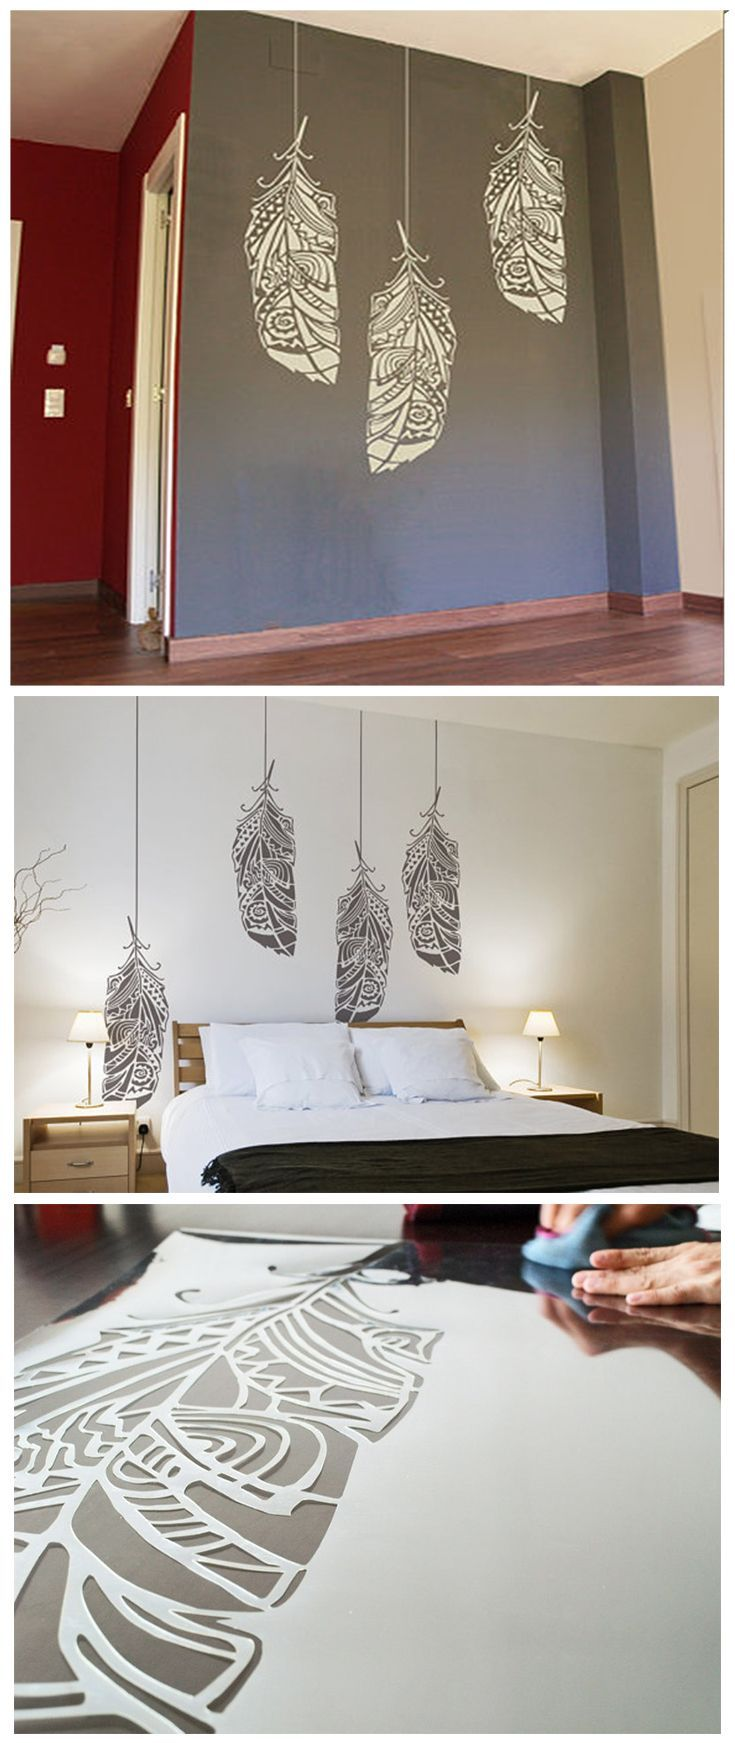 Feather stencil, ethnic decor element for wall, furniture or textile. Painting ideas for wall.